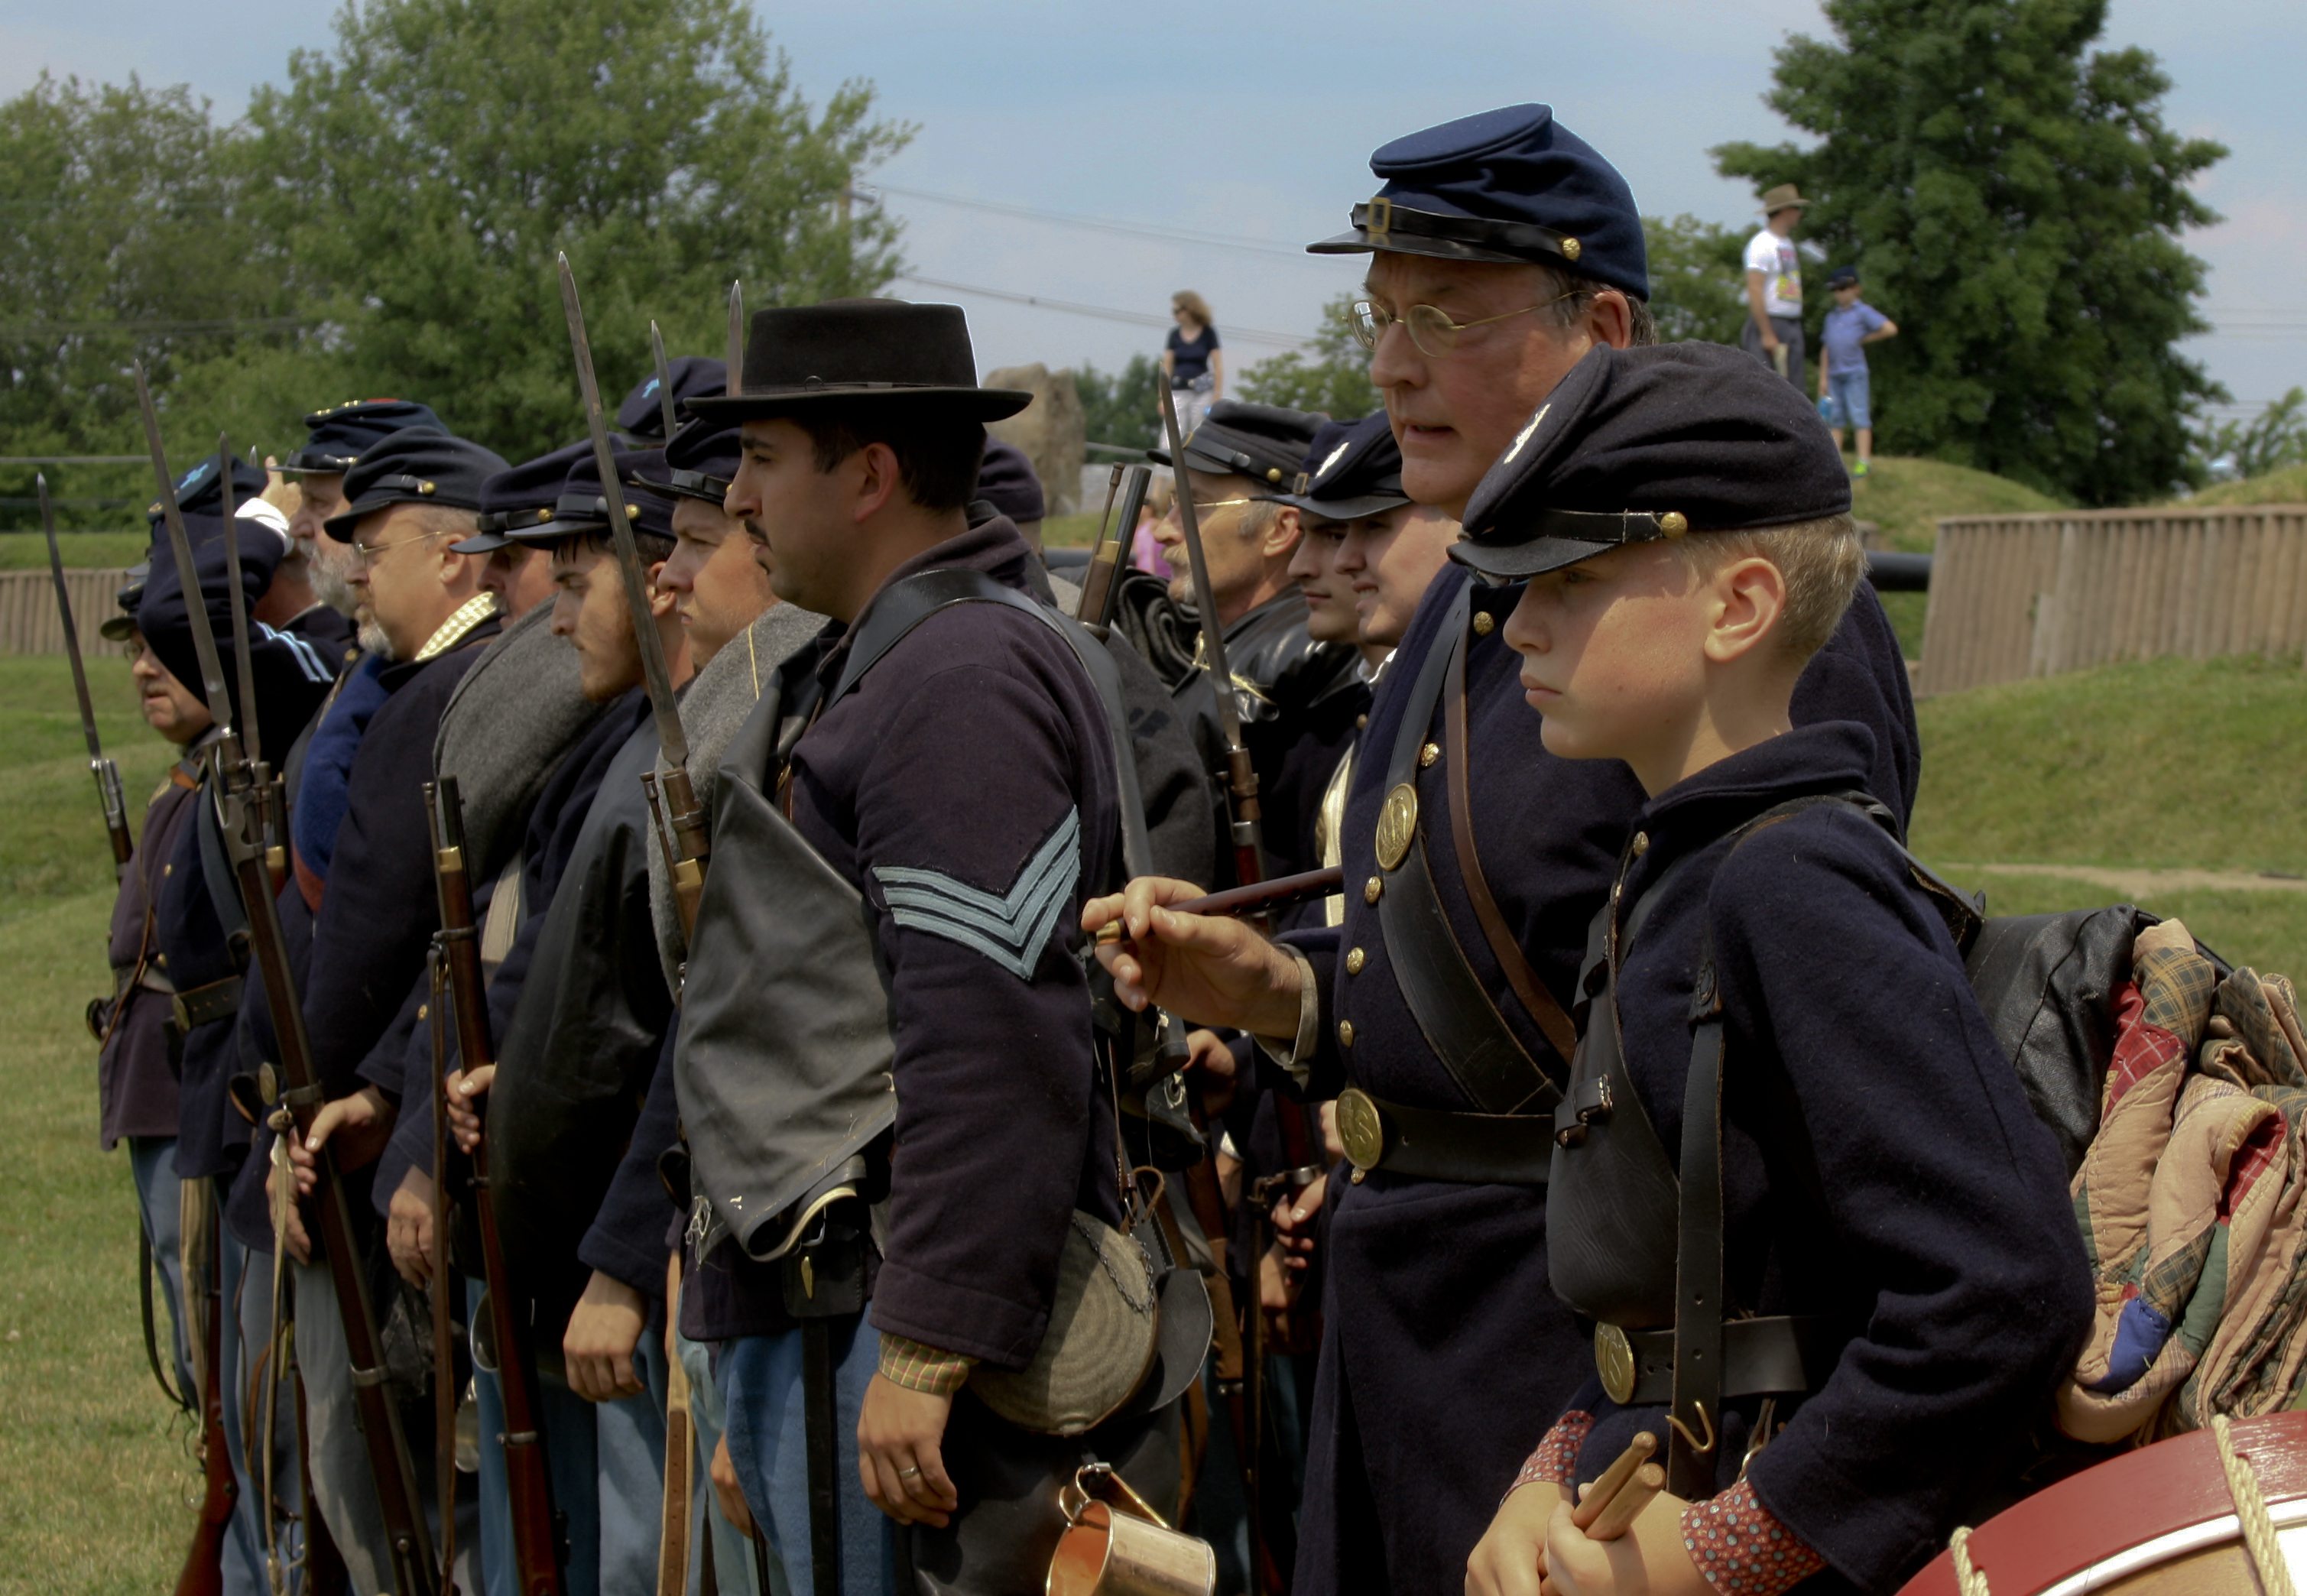 Union soldier re-enactors stand in a row